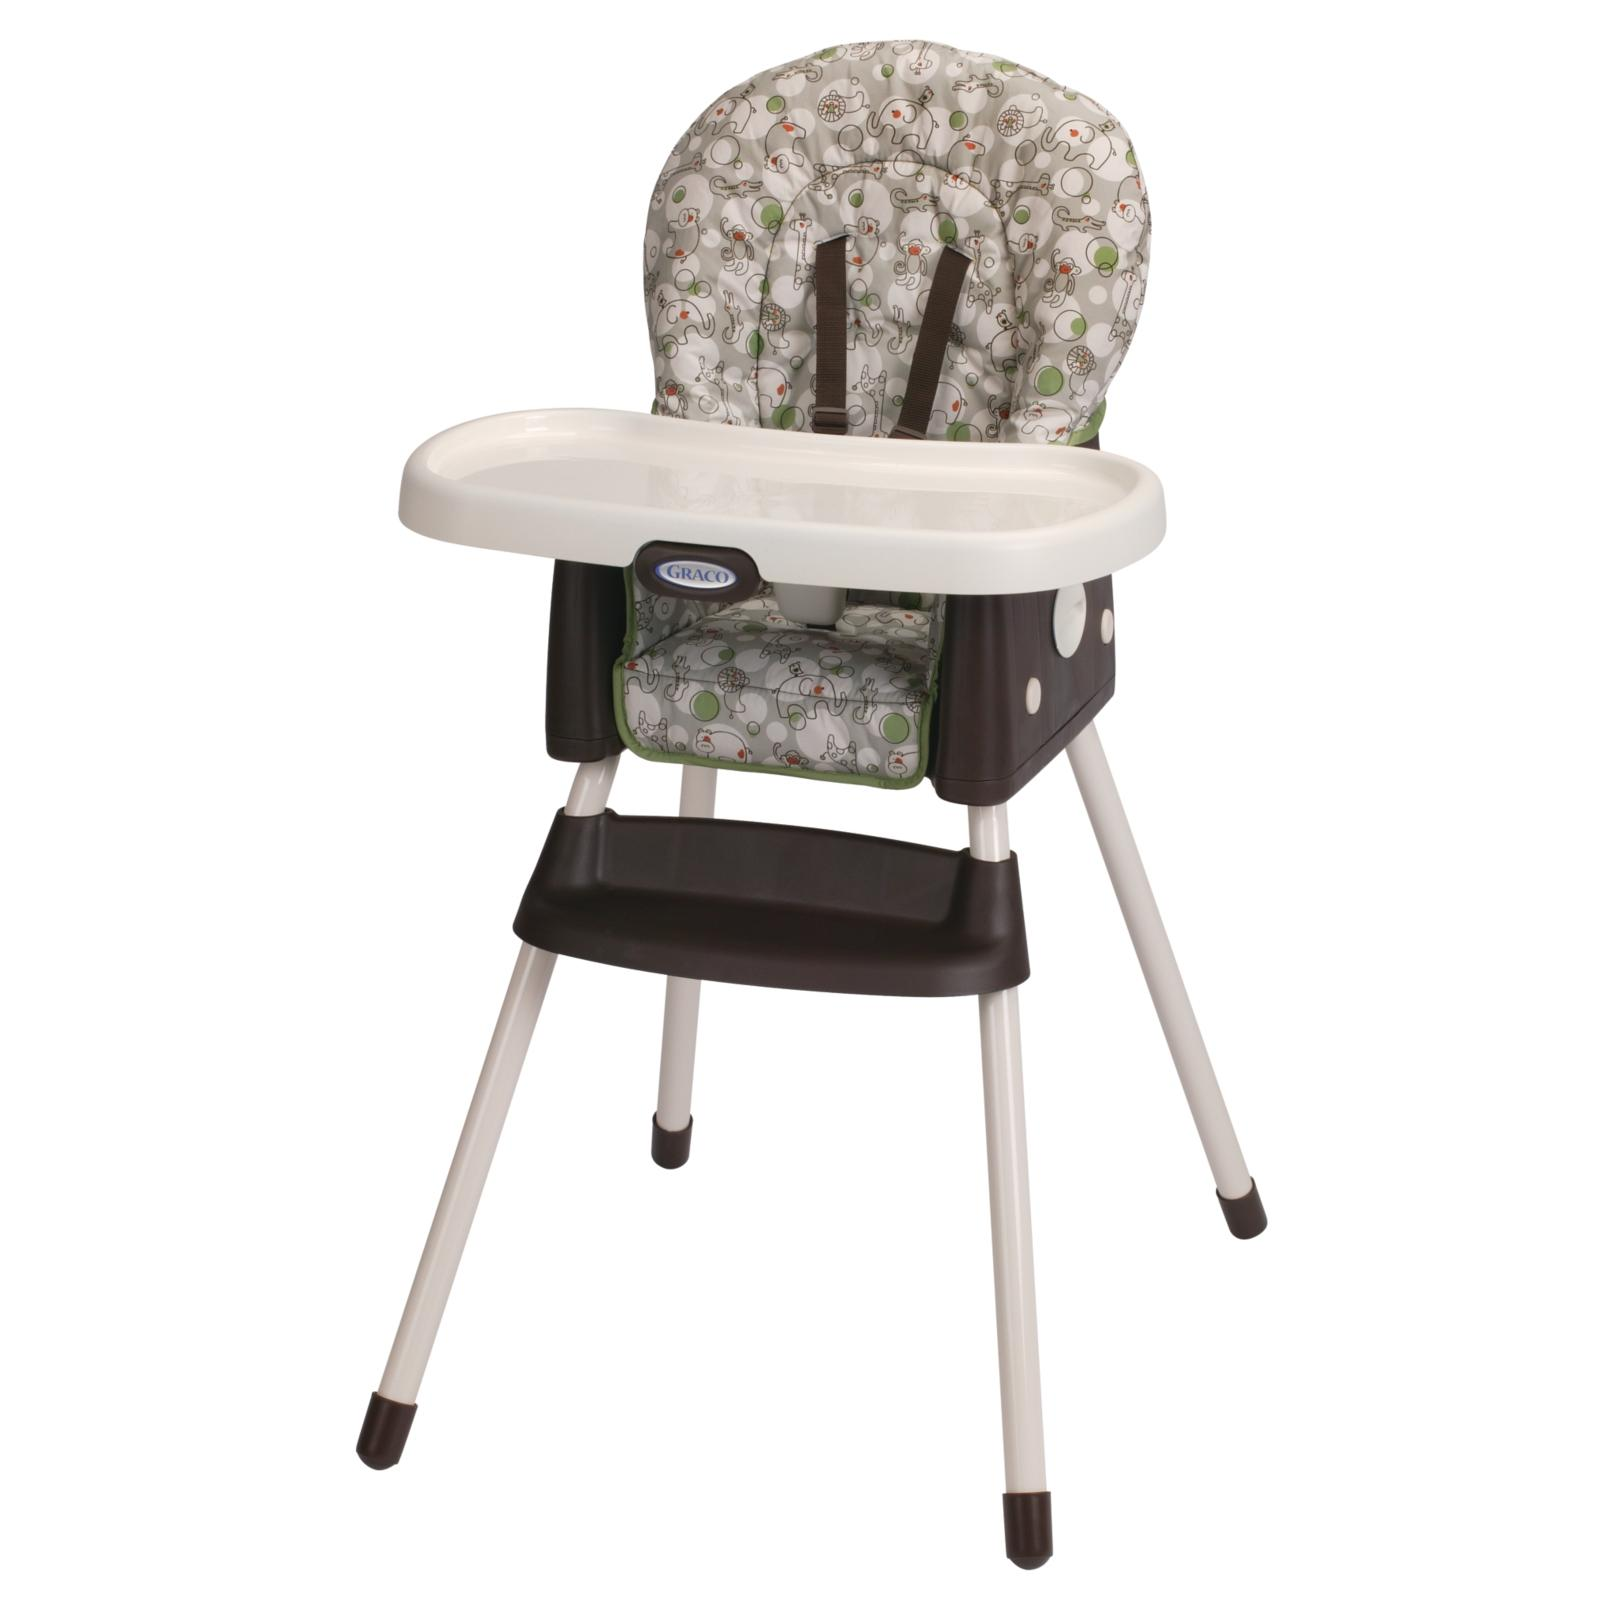 dining chair booster seat kmart leopard print and ottoman seats high chairs